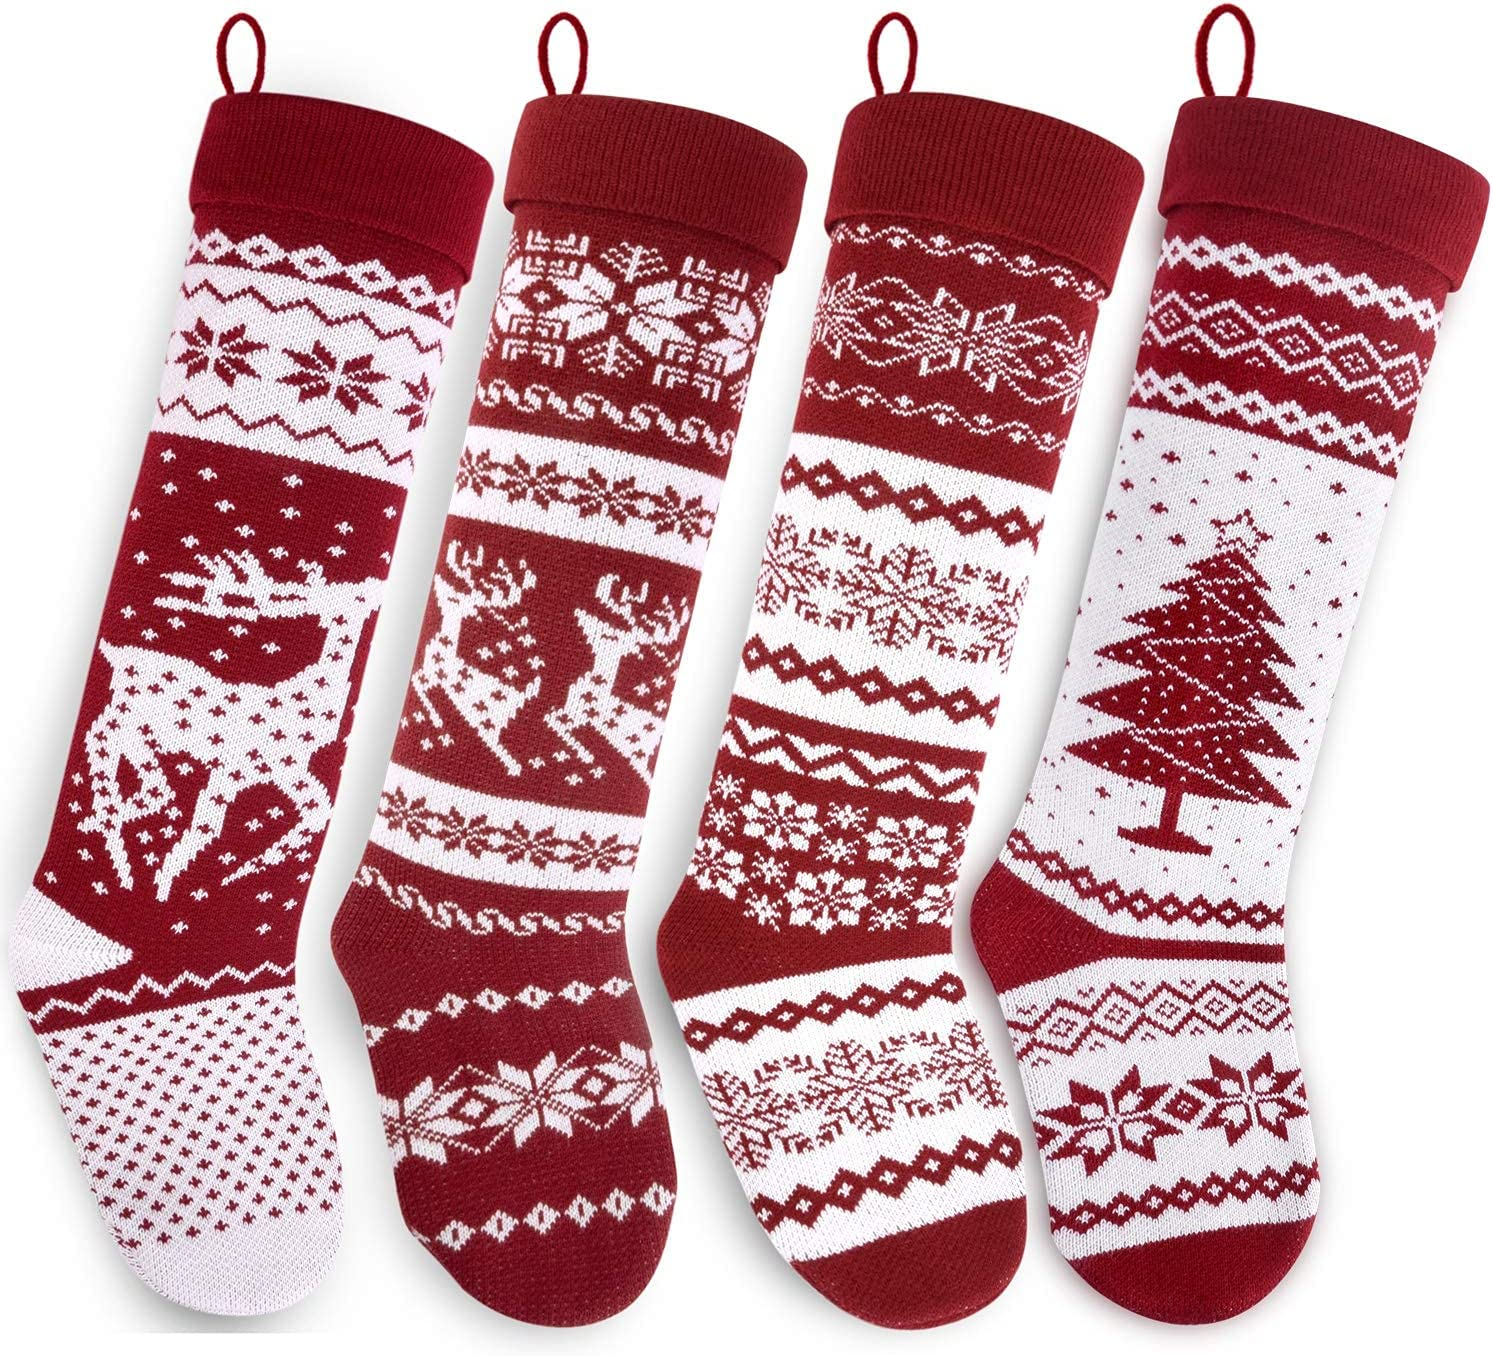 Starry Max 69% OFF Dynamo Christmas Stockings Hand-Knitte Long All items free shipping Extra 26-Inch